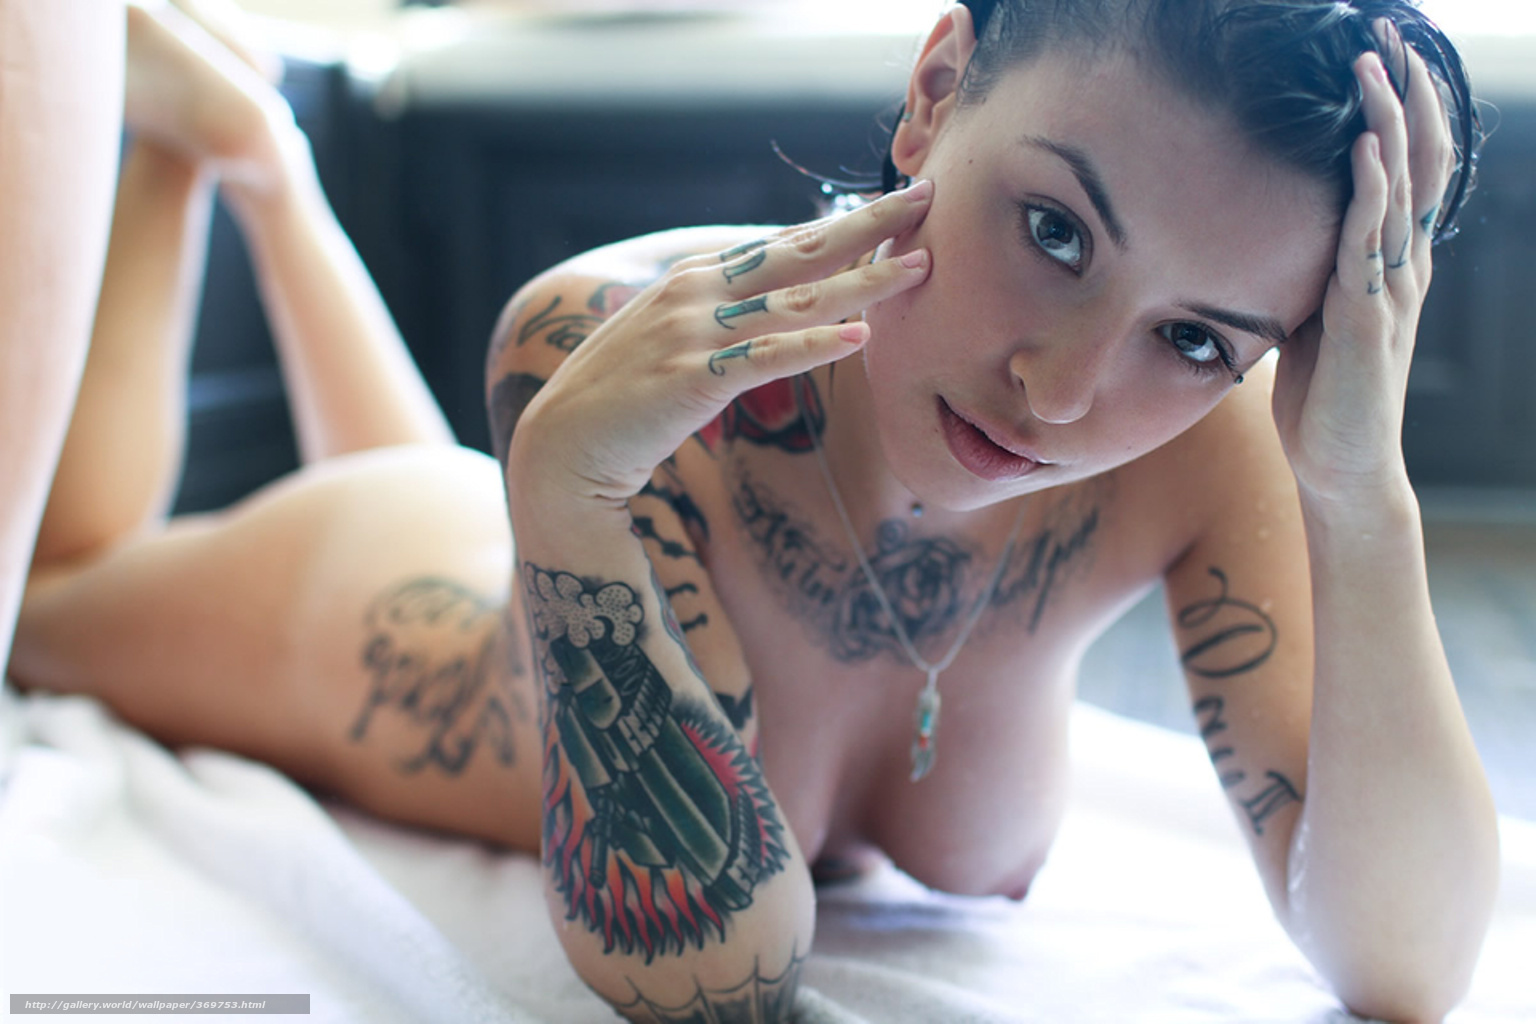 Awesome tattoo nude lady what